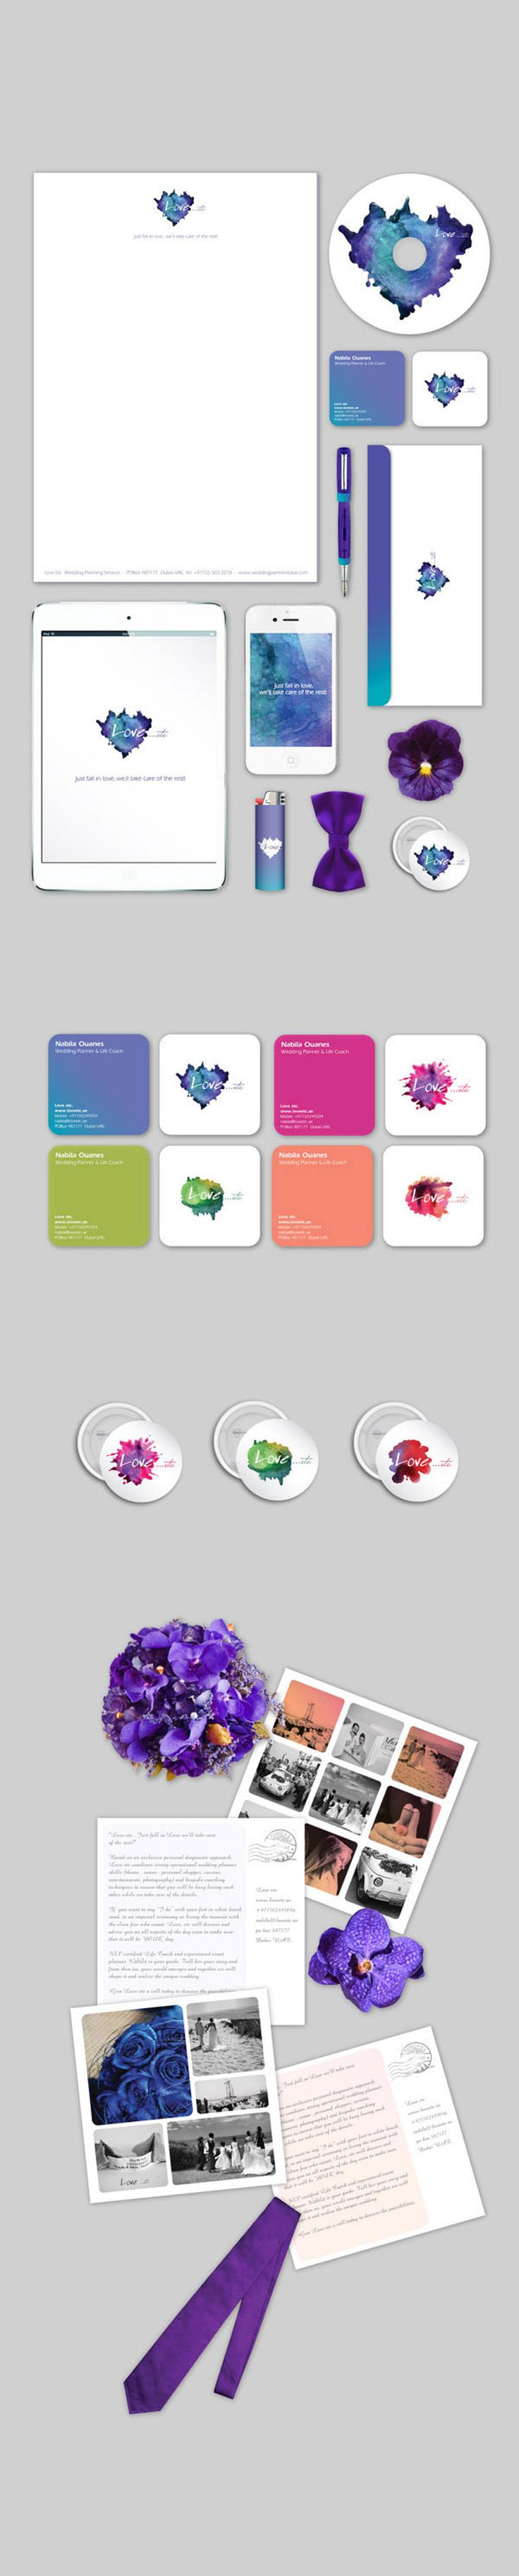 Paint splatter logo and #stationary. I love the bright colors within the simple, modern design.